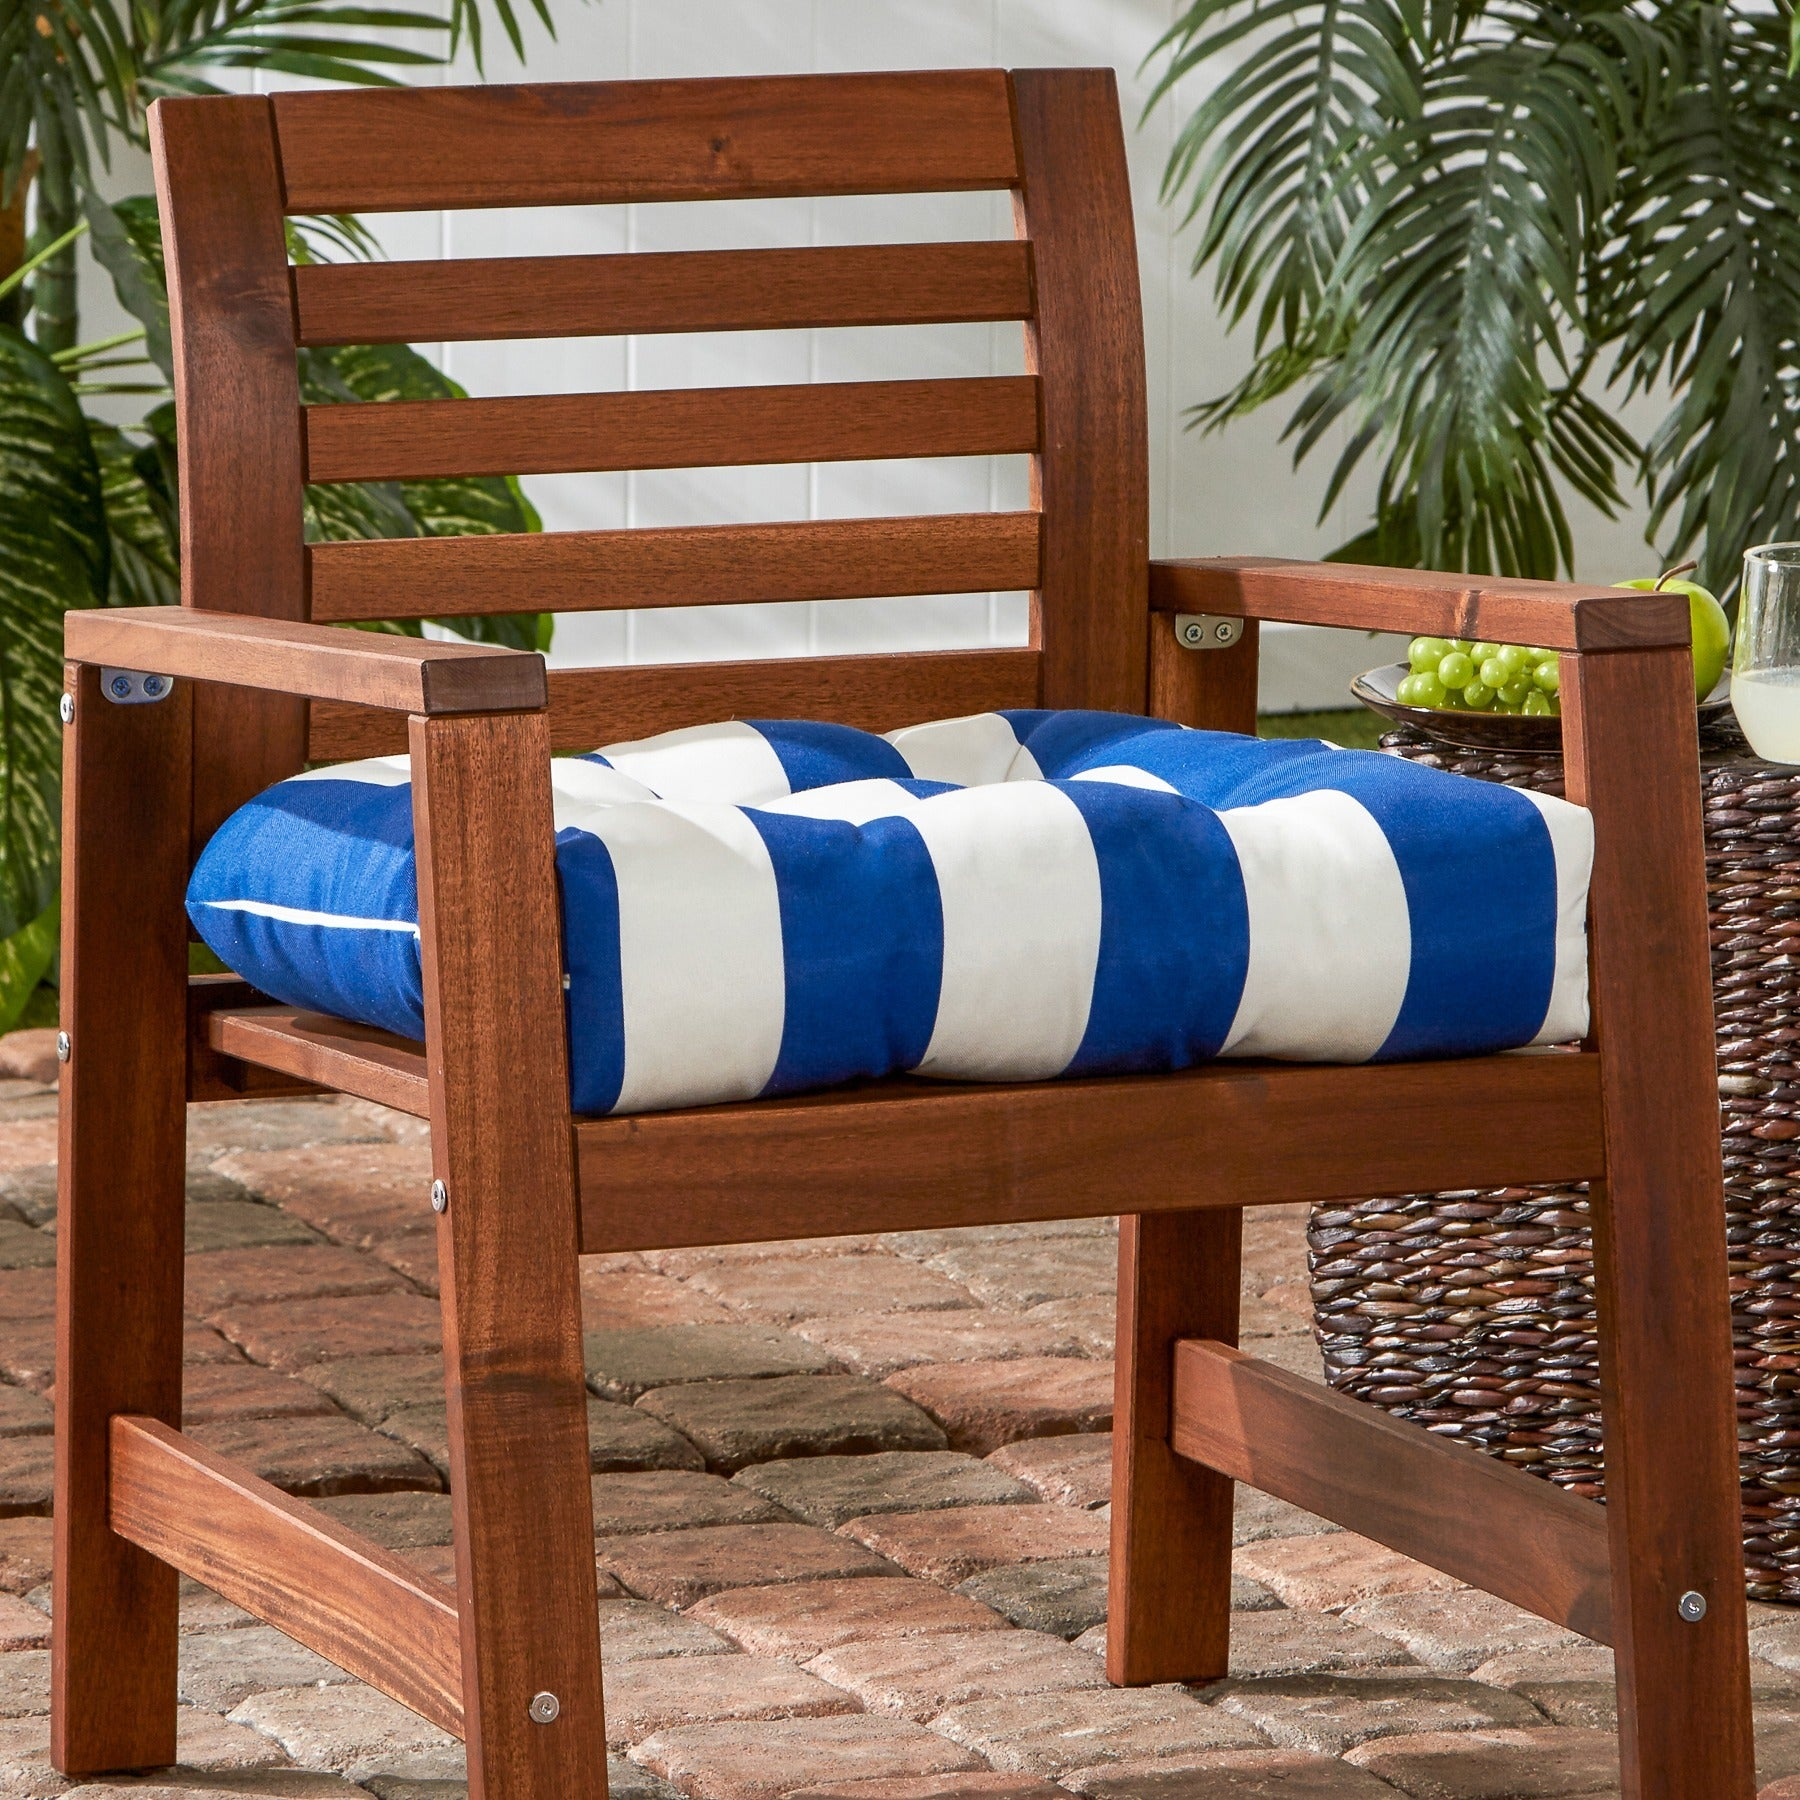 Shop Greendale Home Fashions Cabana Stripe 20 Inch Outdoor Chair